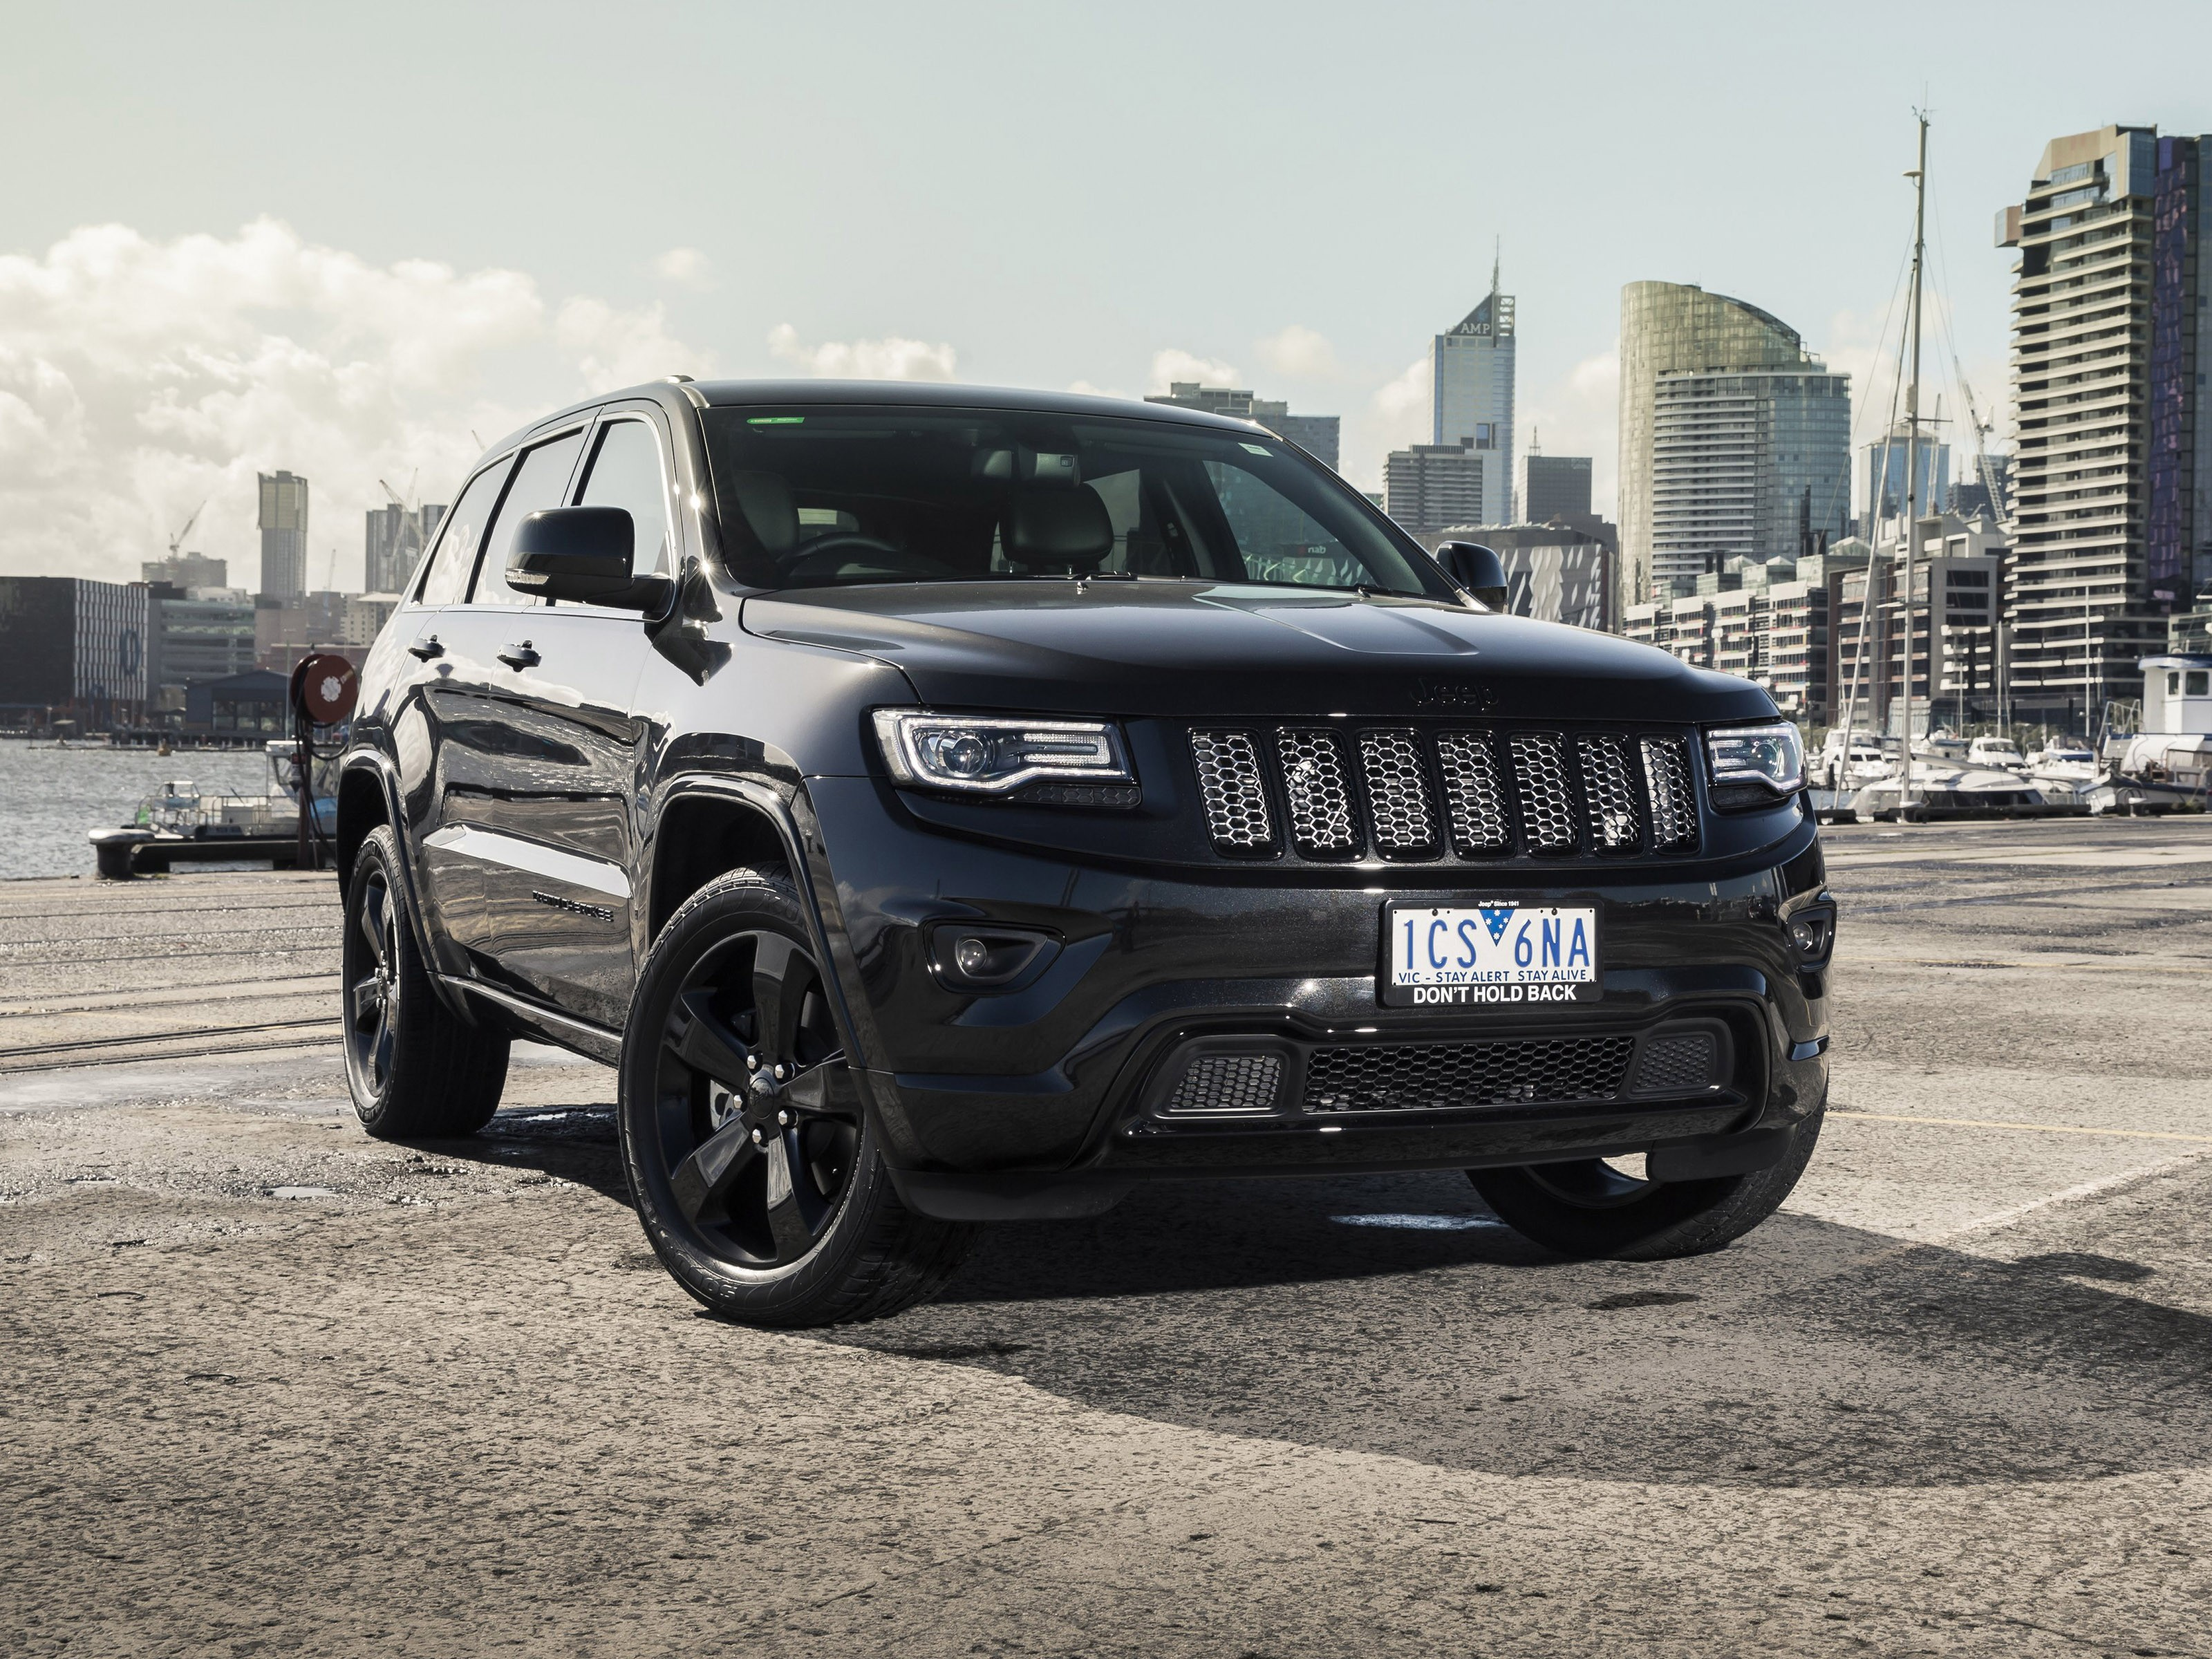 2015 Jeep Grand Cherokee Blackhawk